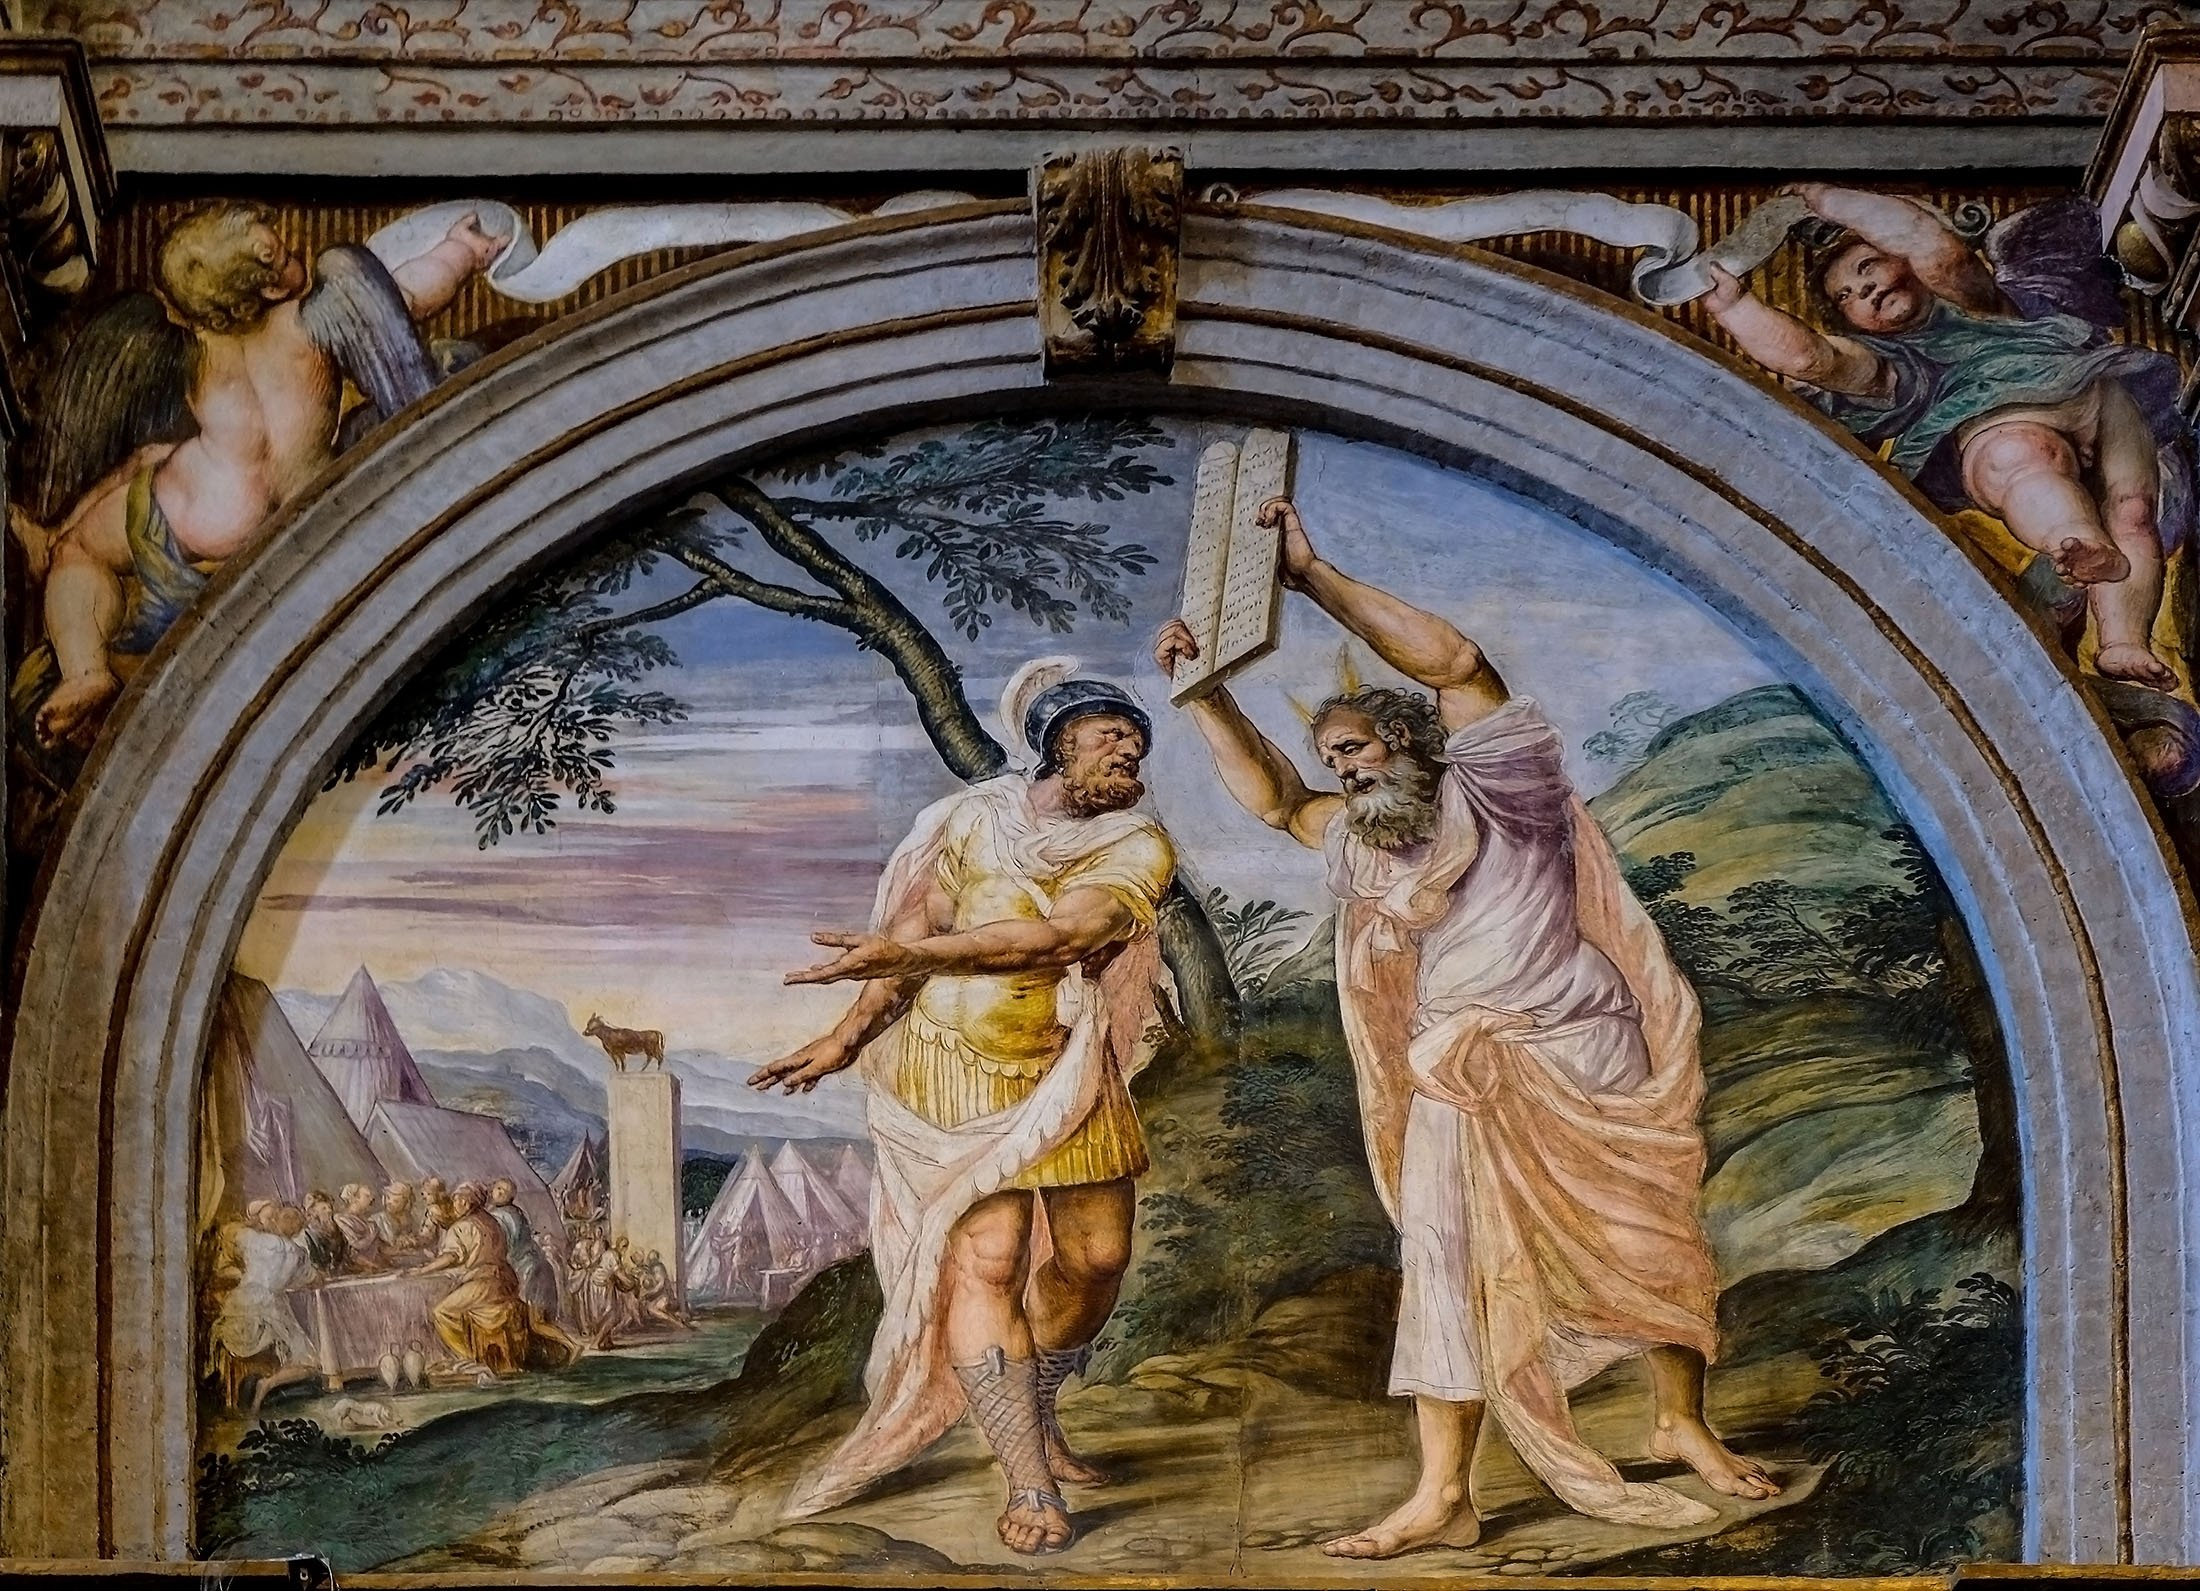 A fresco depicts the Prophet Moses descend from Mount Sinai withthe Ten Commandments in the Church of Saint Maurice al Monastero Maggiore, Milan, Italy, July 25, 2017. (Shutterstock Photo)